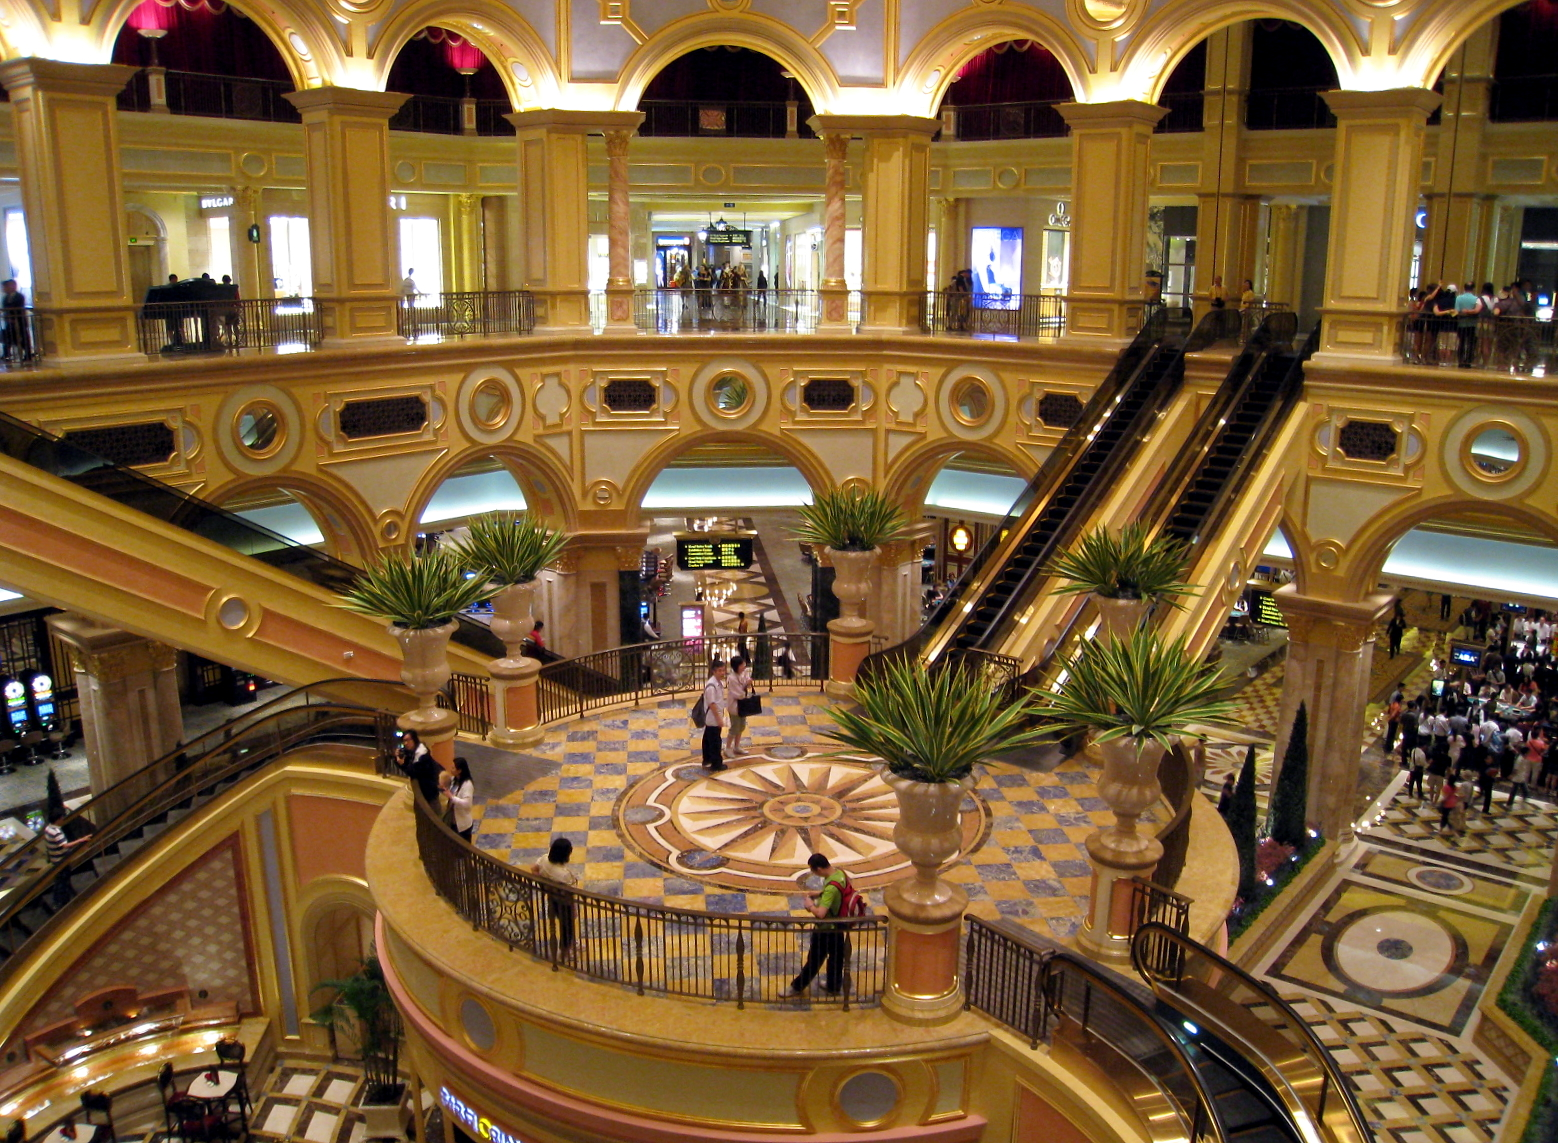 The Great Hall of The Venetian Macao as a Five-Star Class Hotel to better understand Your Options on Hotel vs. Motel